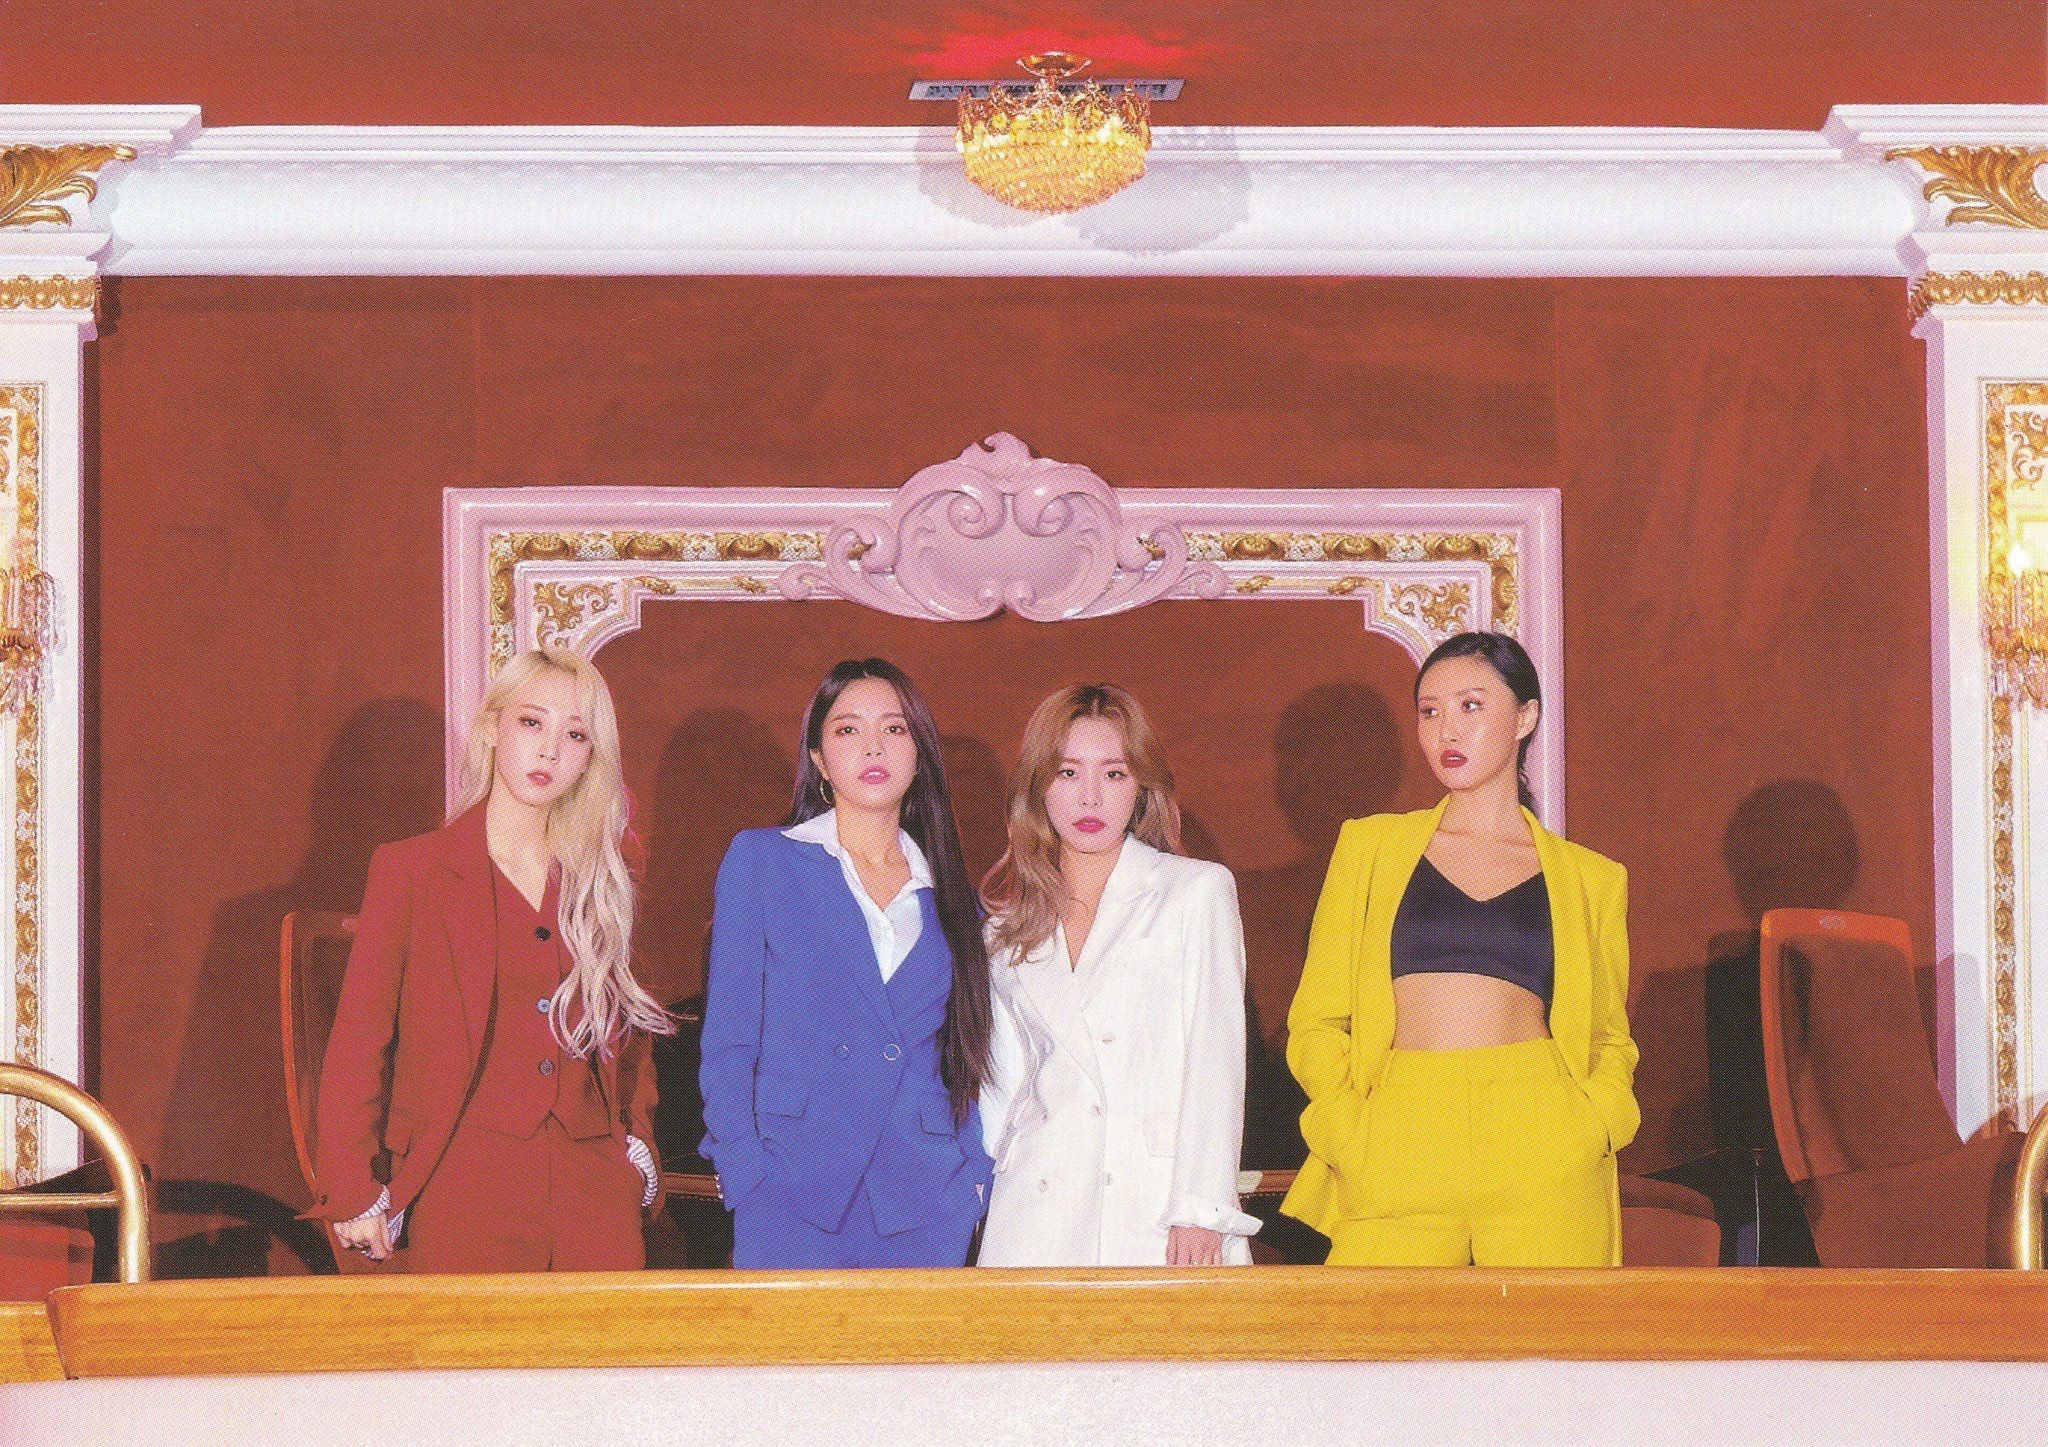 4 Seasons Group mamamoo | 4 seasons concert f/w (with images) | mamamoo